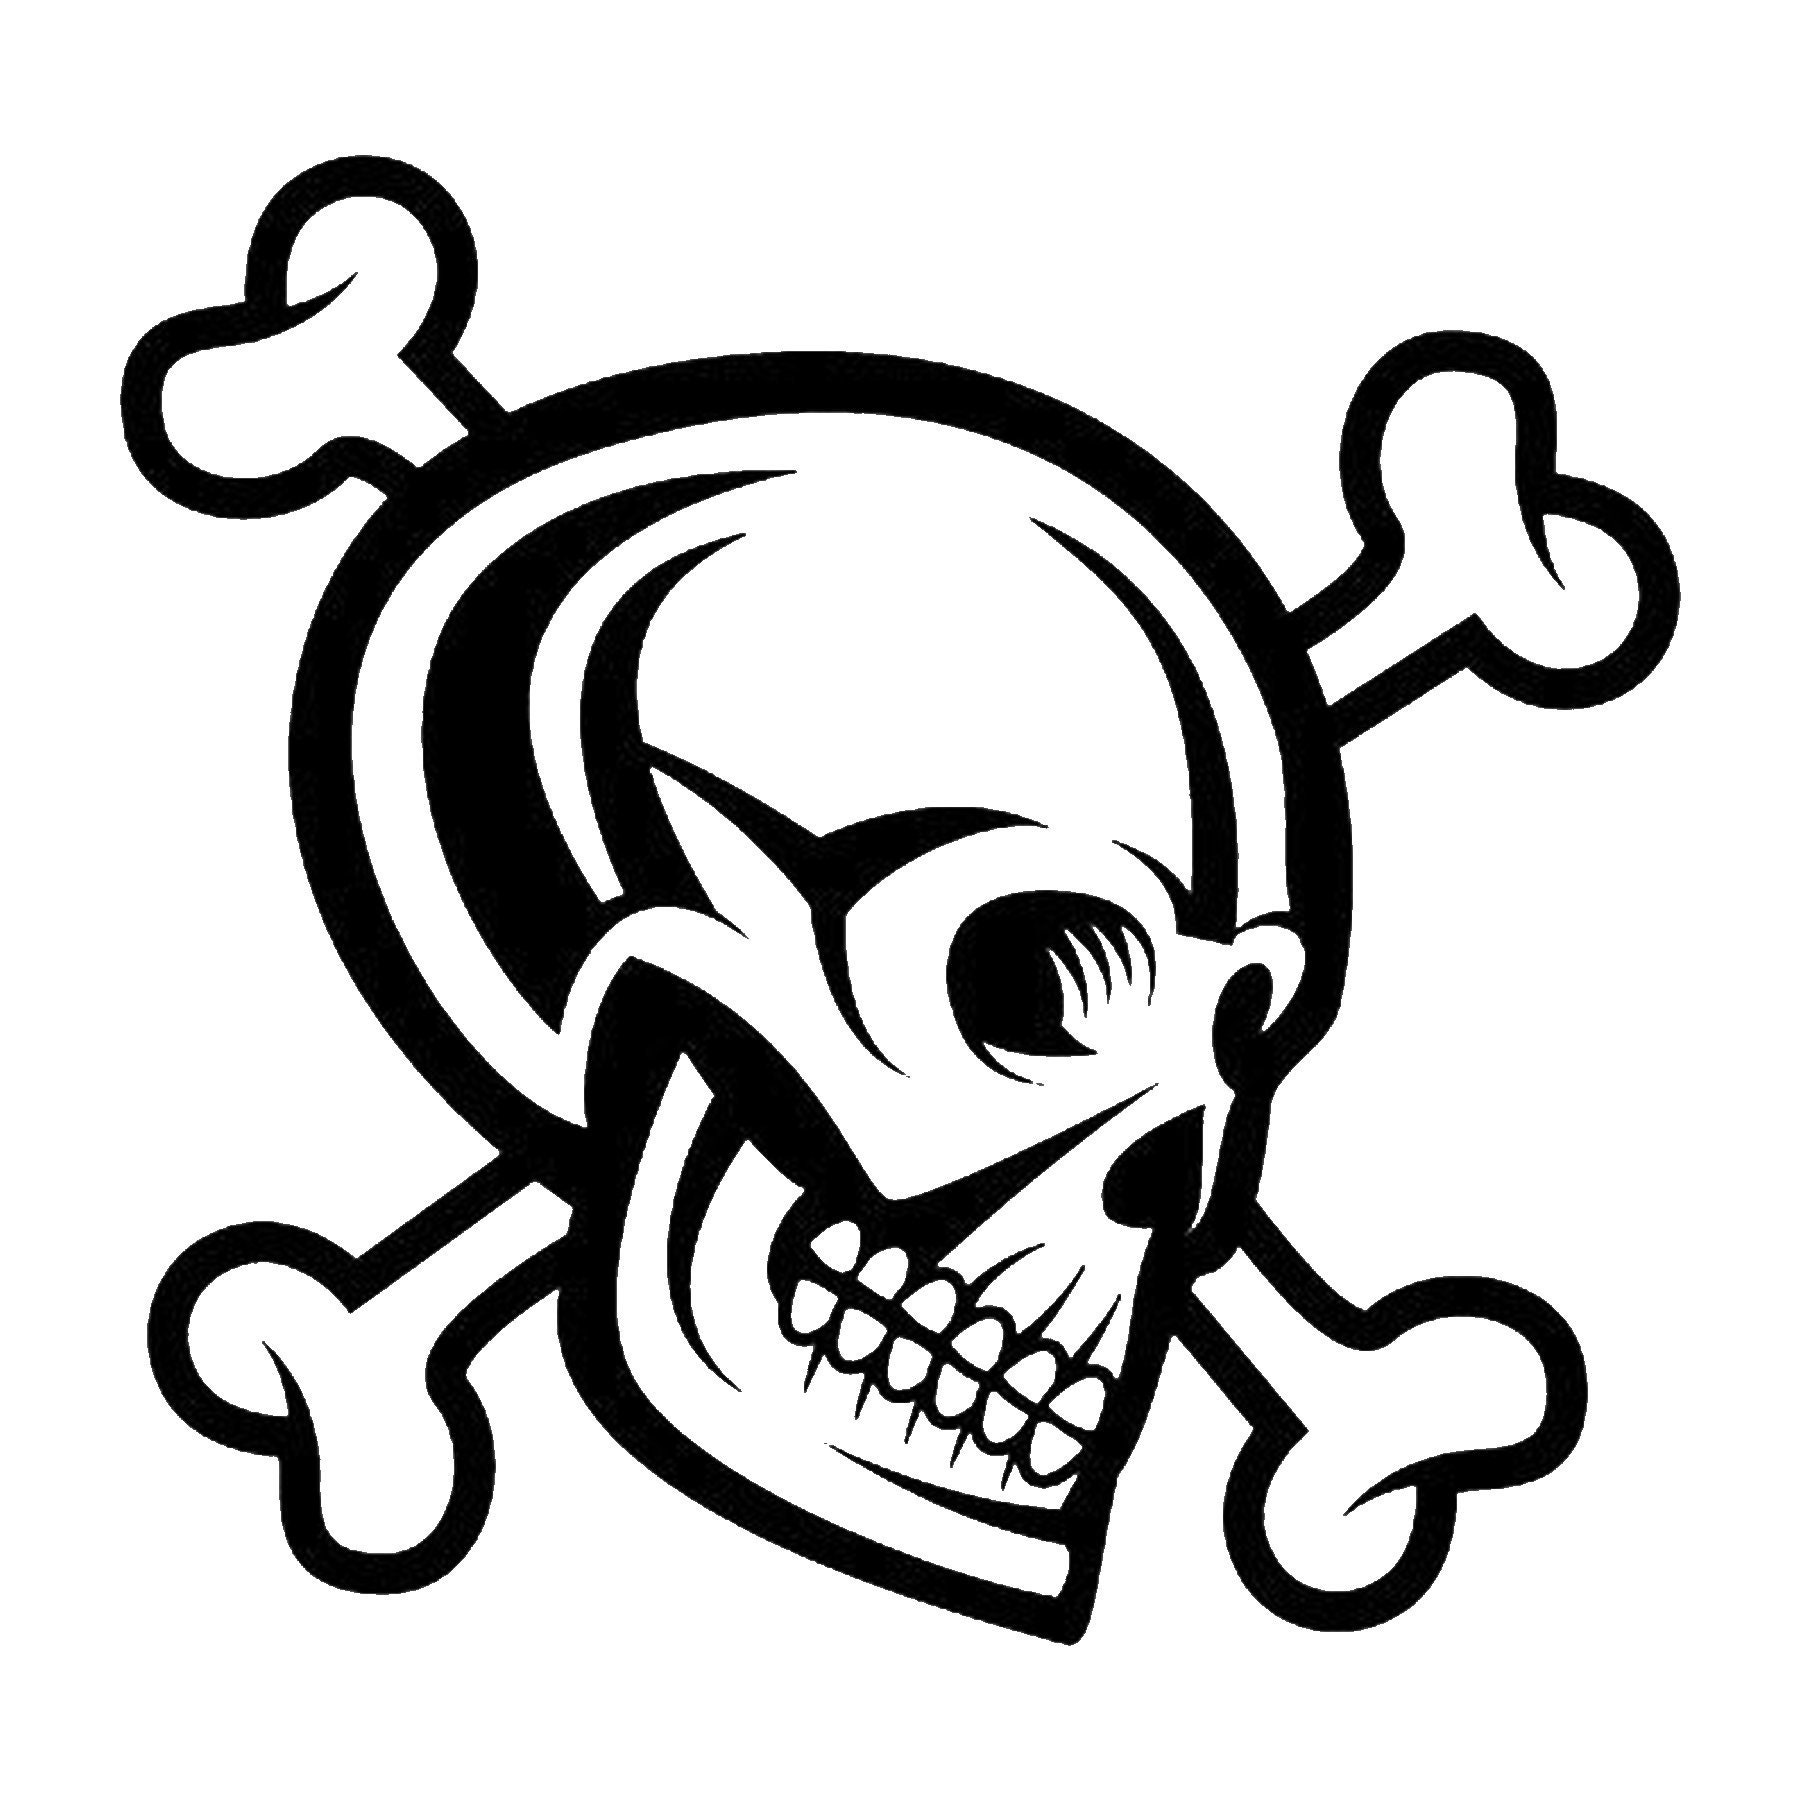 CAD$6.99 - Skull Cross Bones Vinyl Decal - various sizes and colors - colours